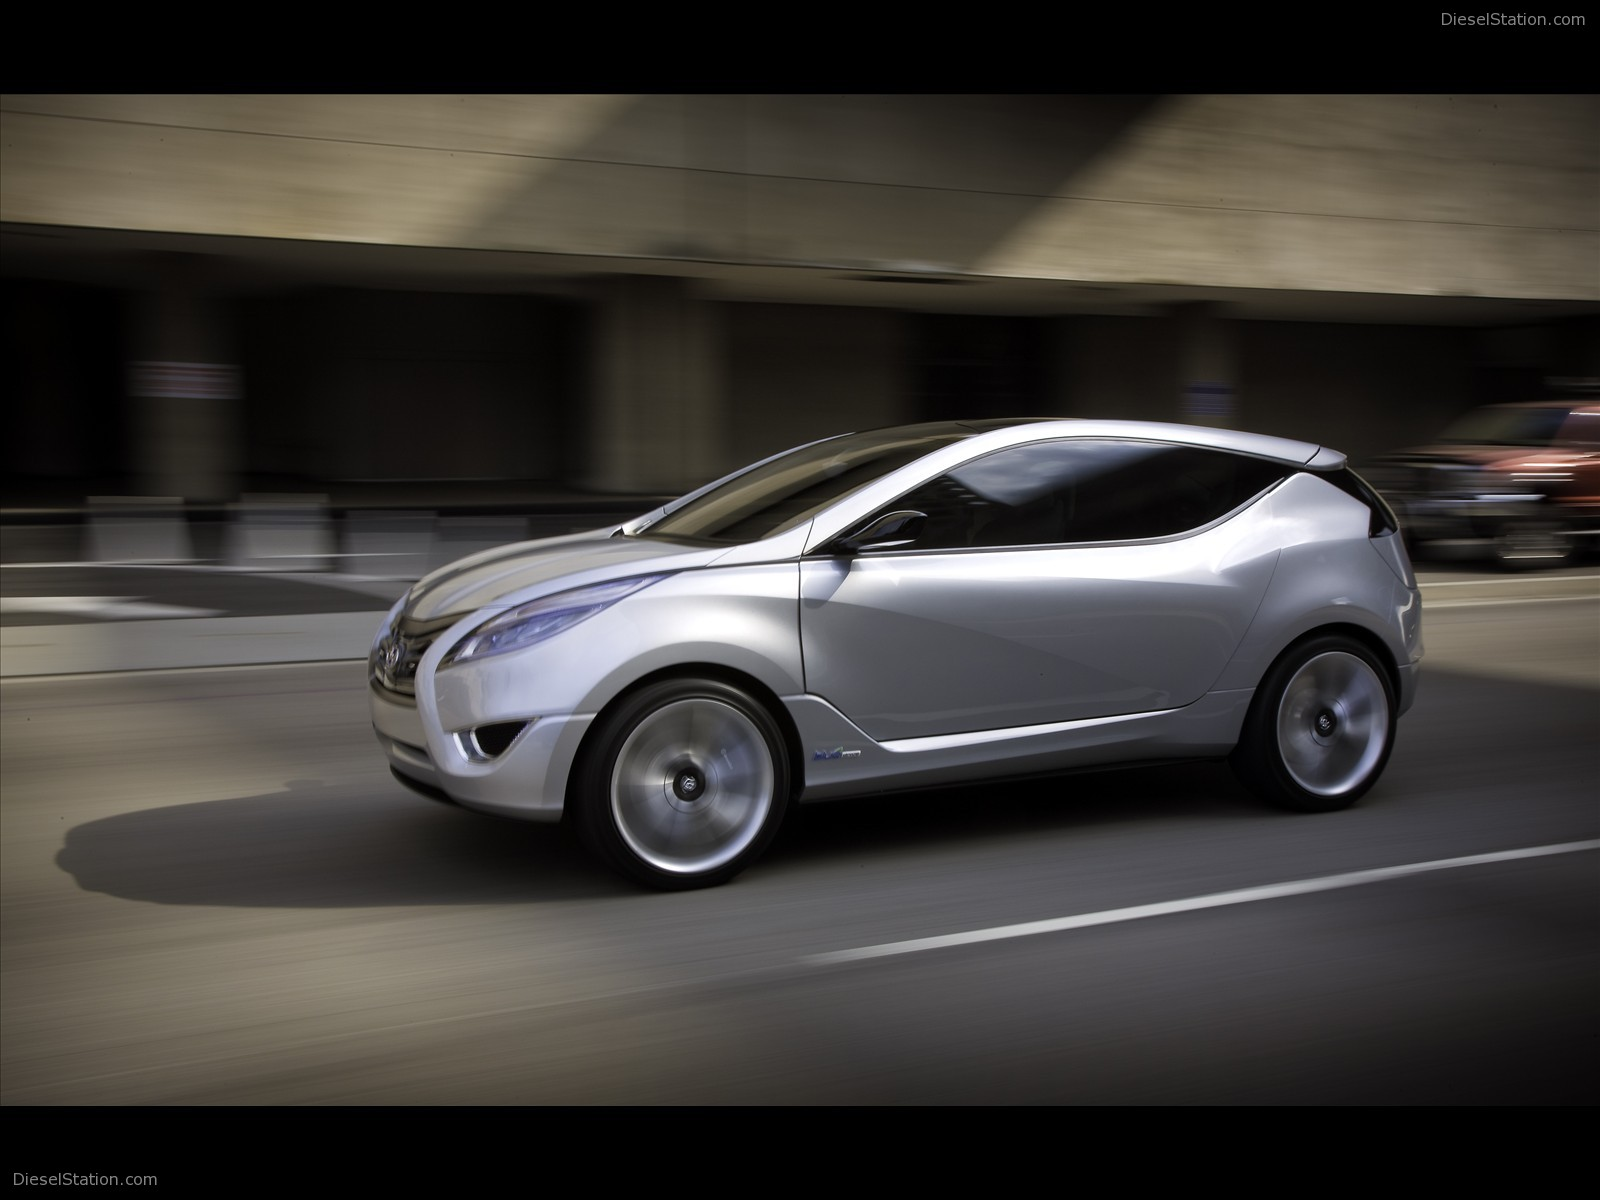 Hyundai nuvis photo - 10